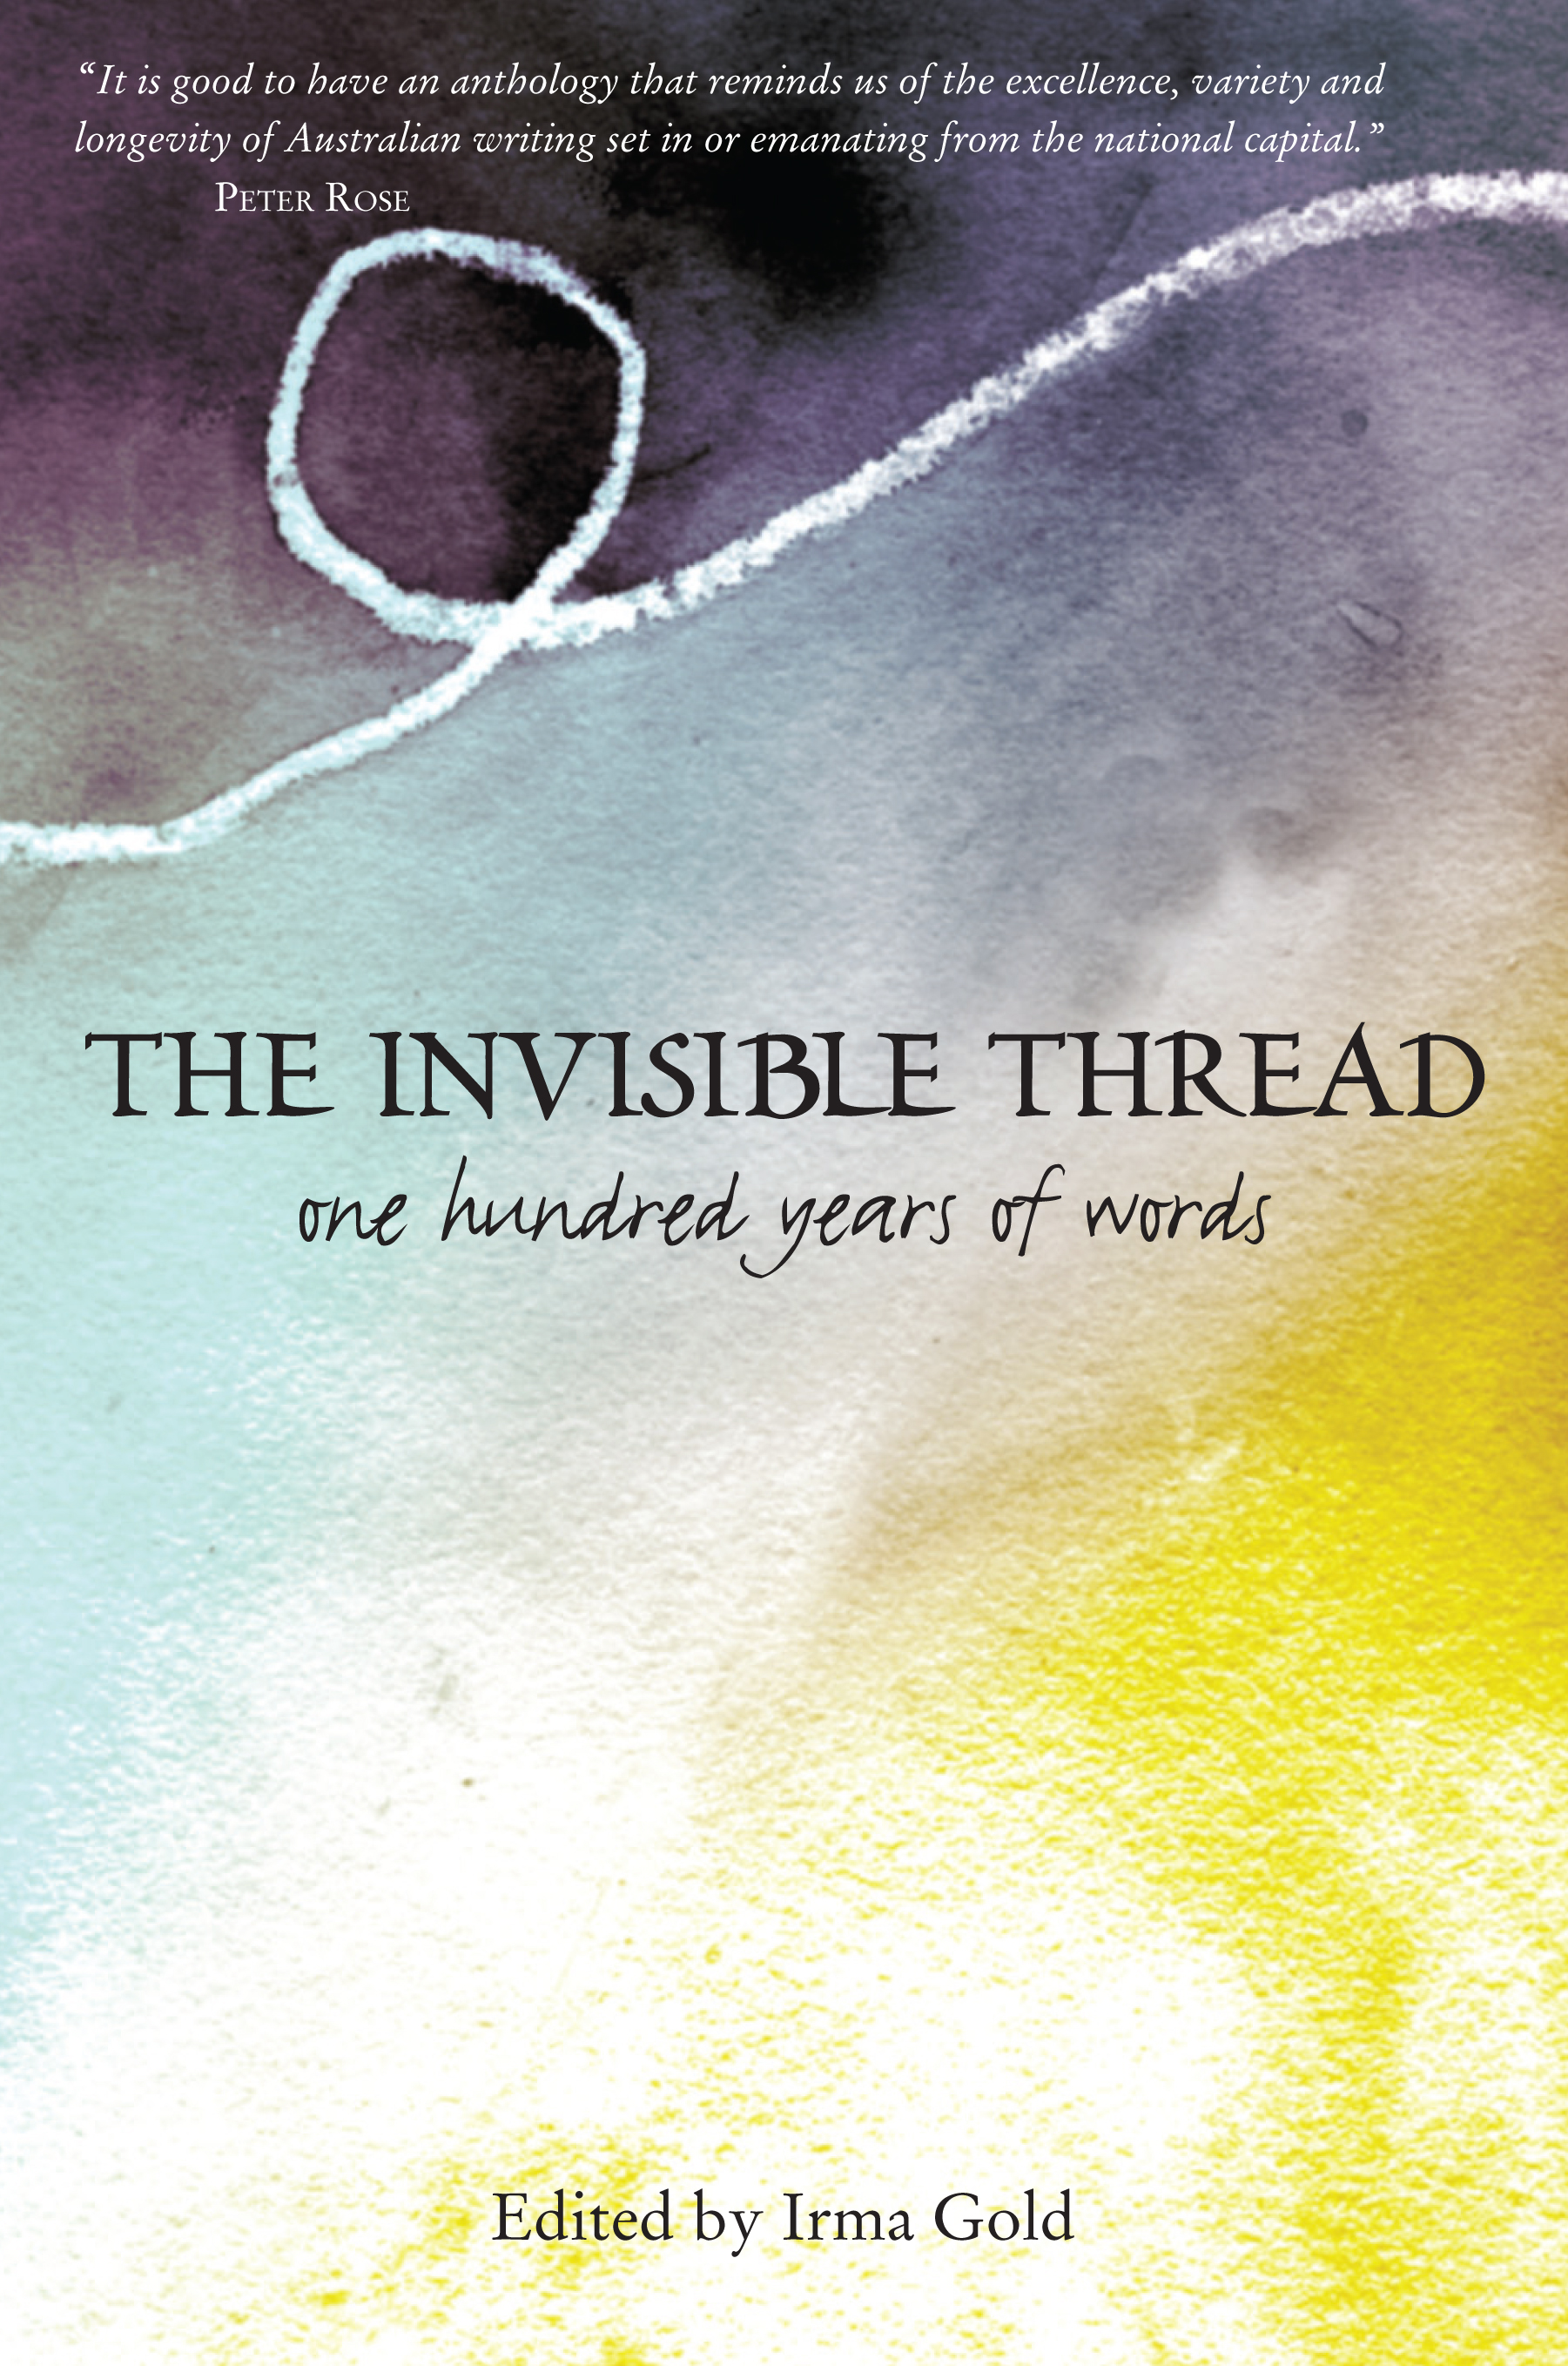 Irma Gold on The Invisible Thread + WIN a copy | LiteraryMinded